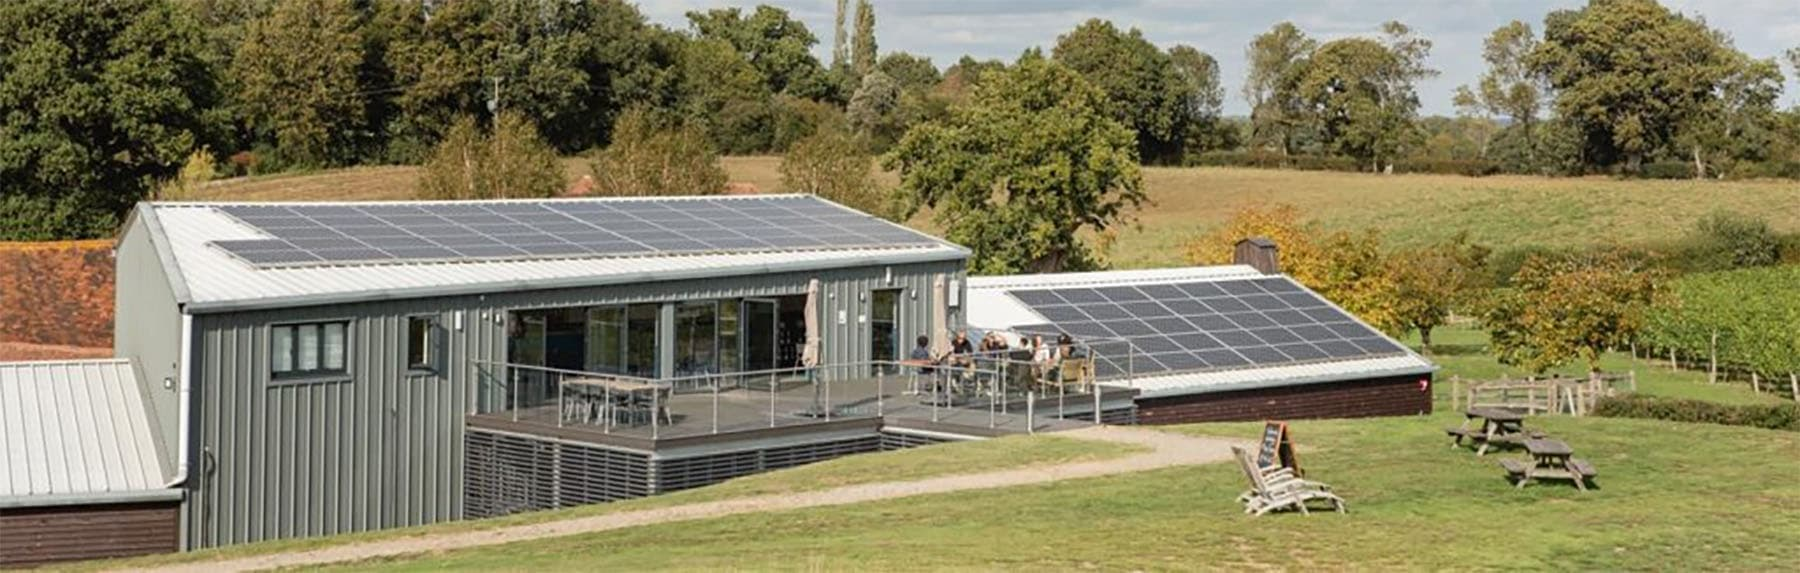 Albourne Estate - About Us - Solar panels on our tasting rooms